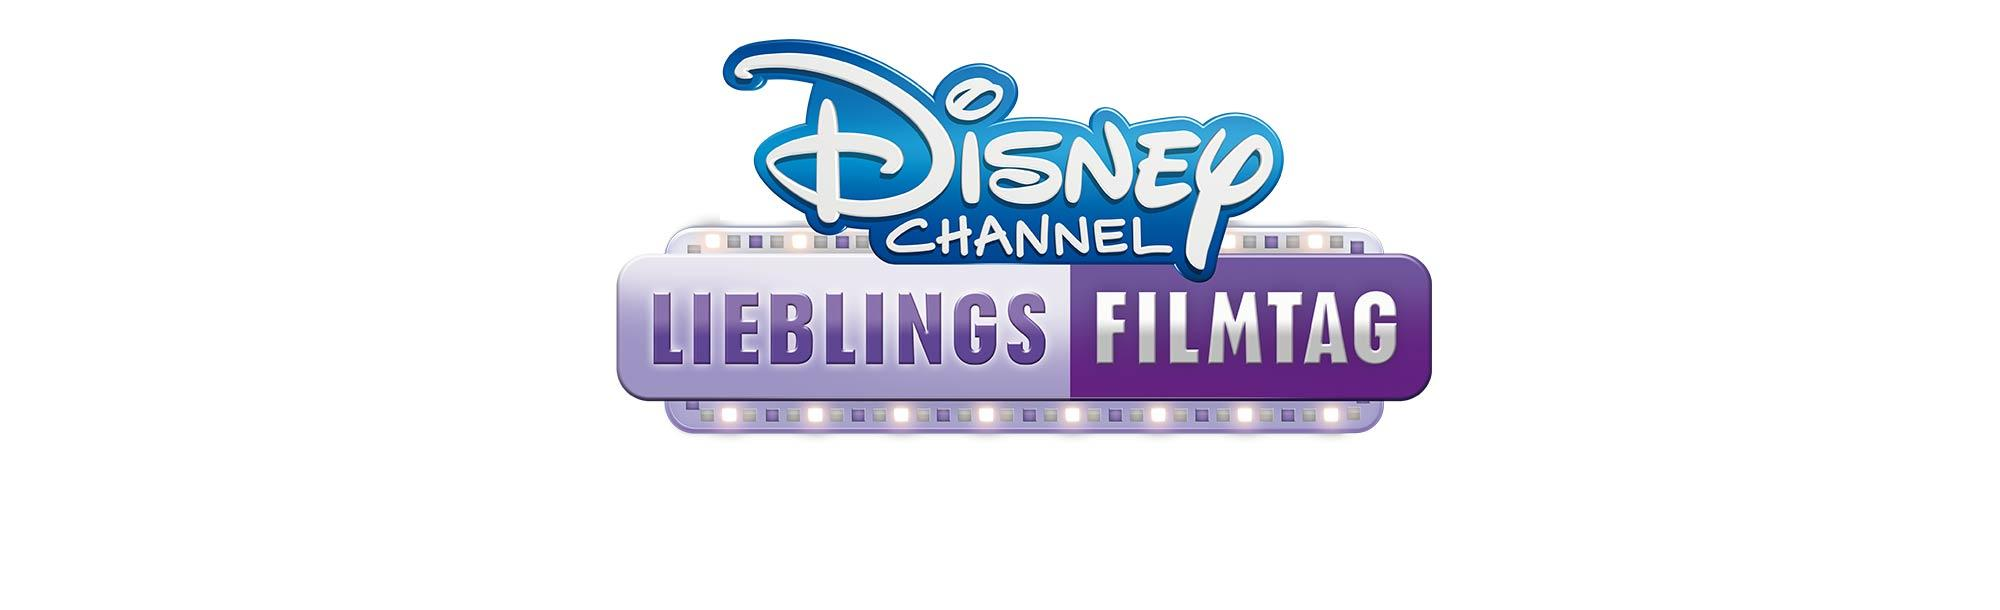 Dragon Rainbow/Der Disney Channel Lieblingsfilmtag